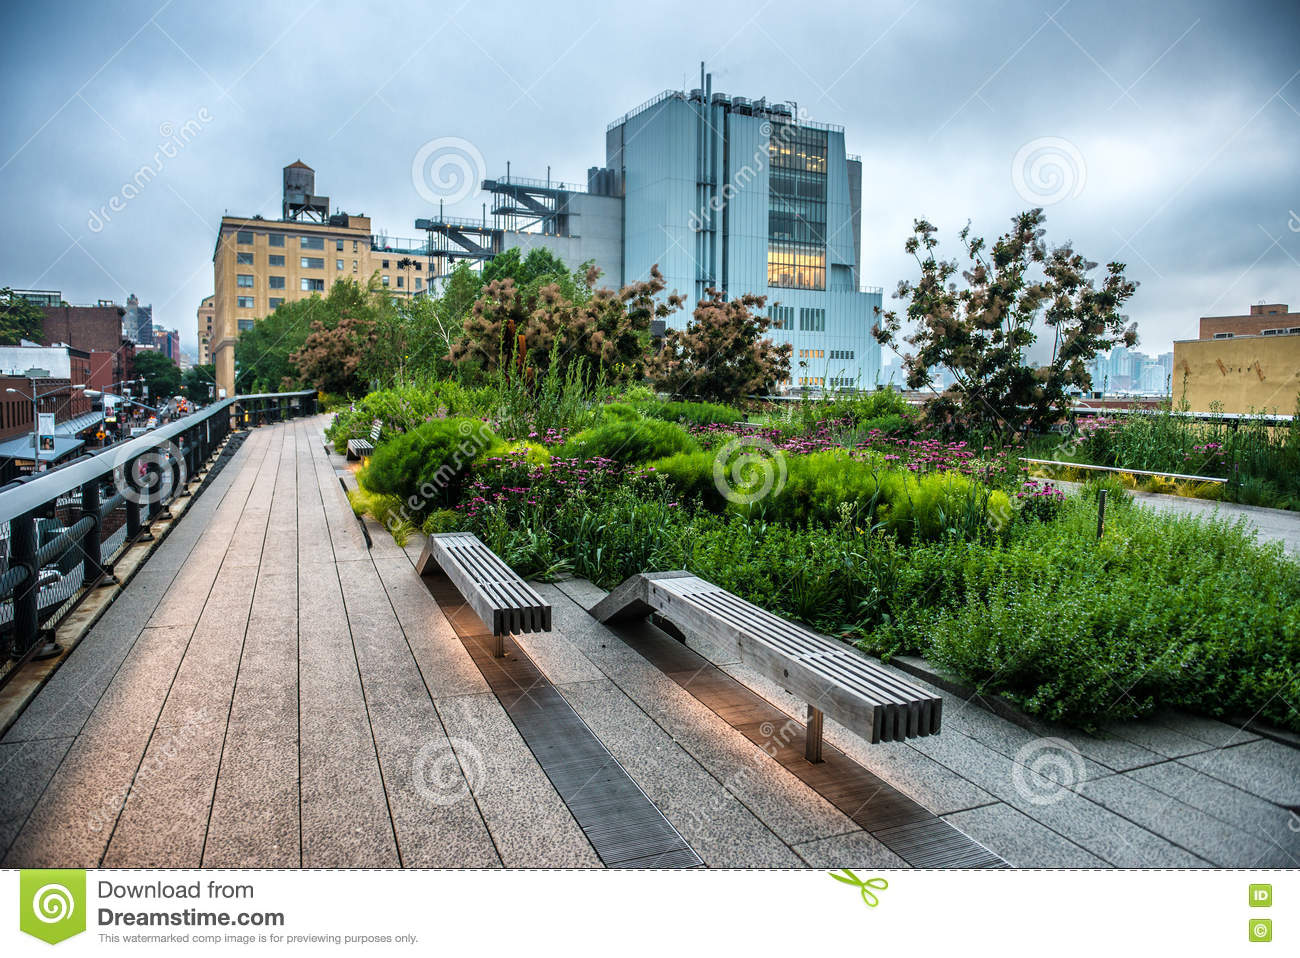 high line park urban public park on an historic freight rail line in new york city manhattan. Black Bedroom Furniture Sets. Home Design Ideas